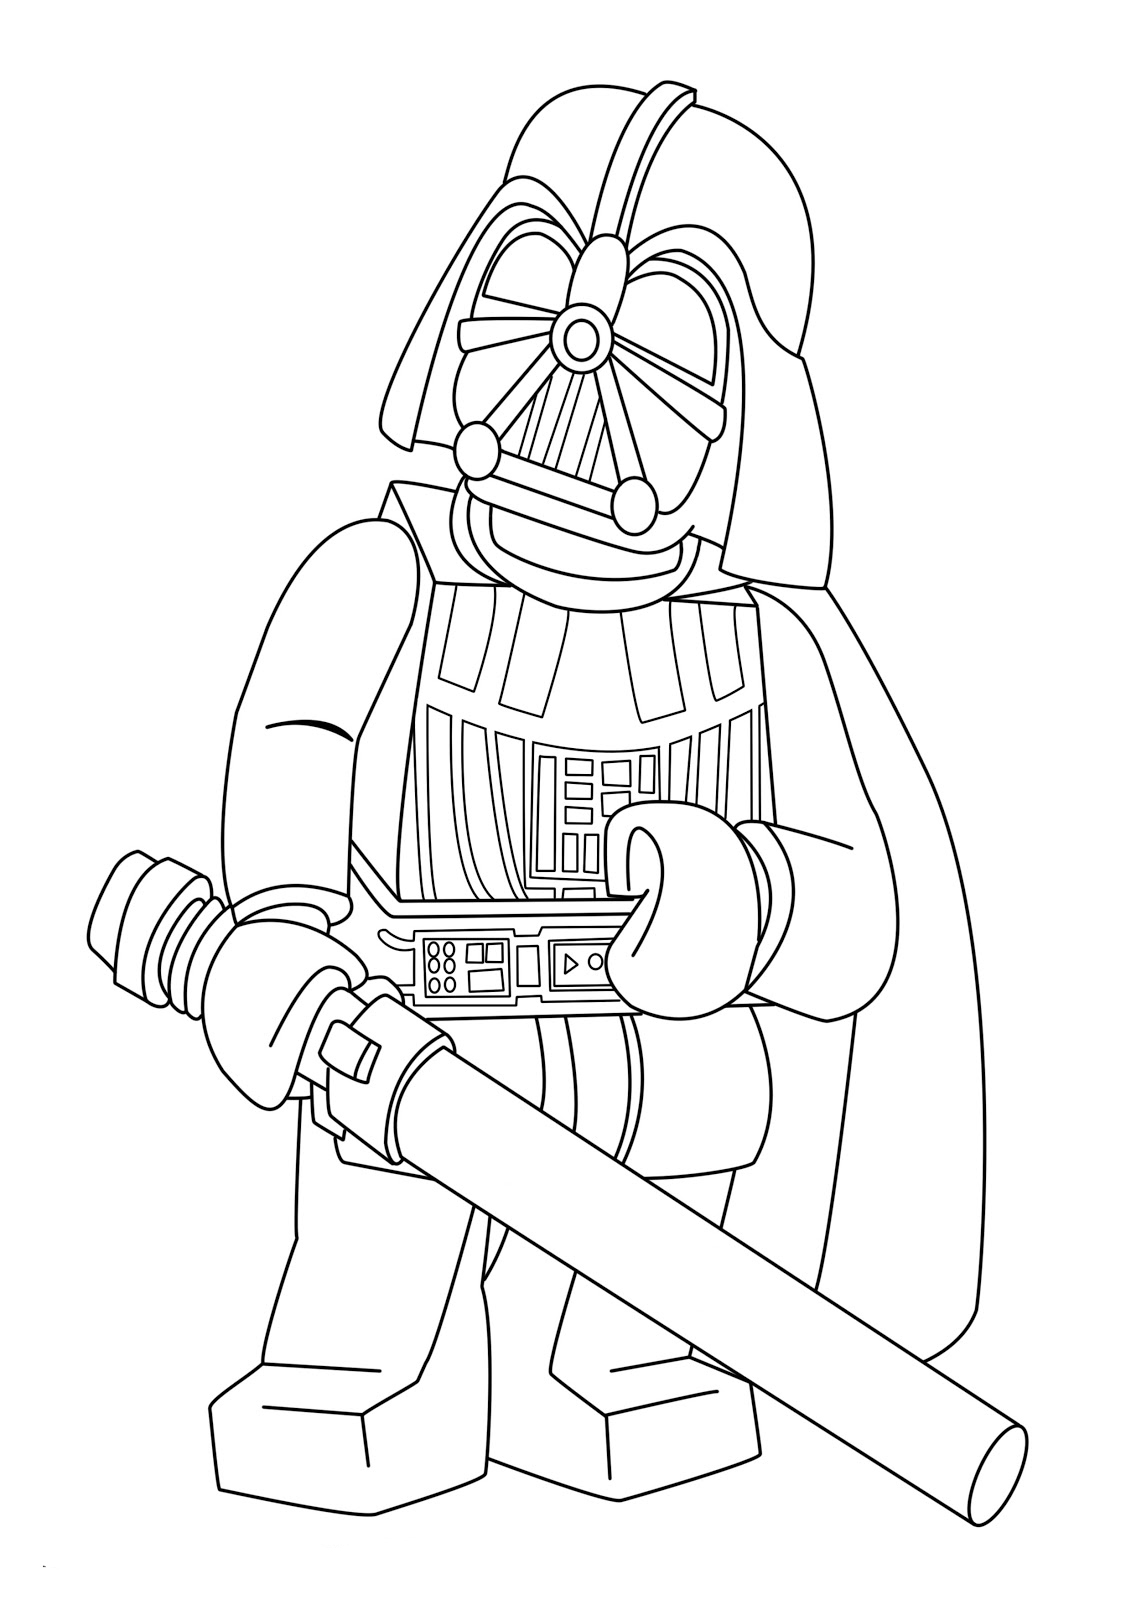 lego star wars printable coloring pages lego star wars unique elegant1 coloring pages printable star printable wars pages lego coloring